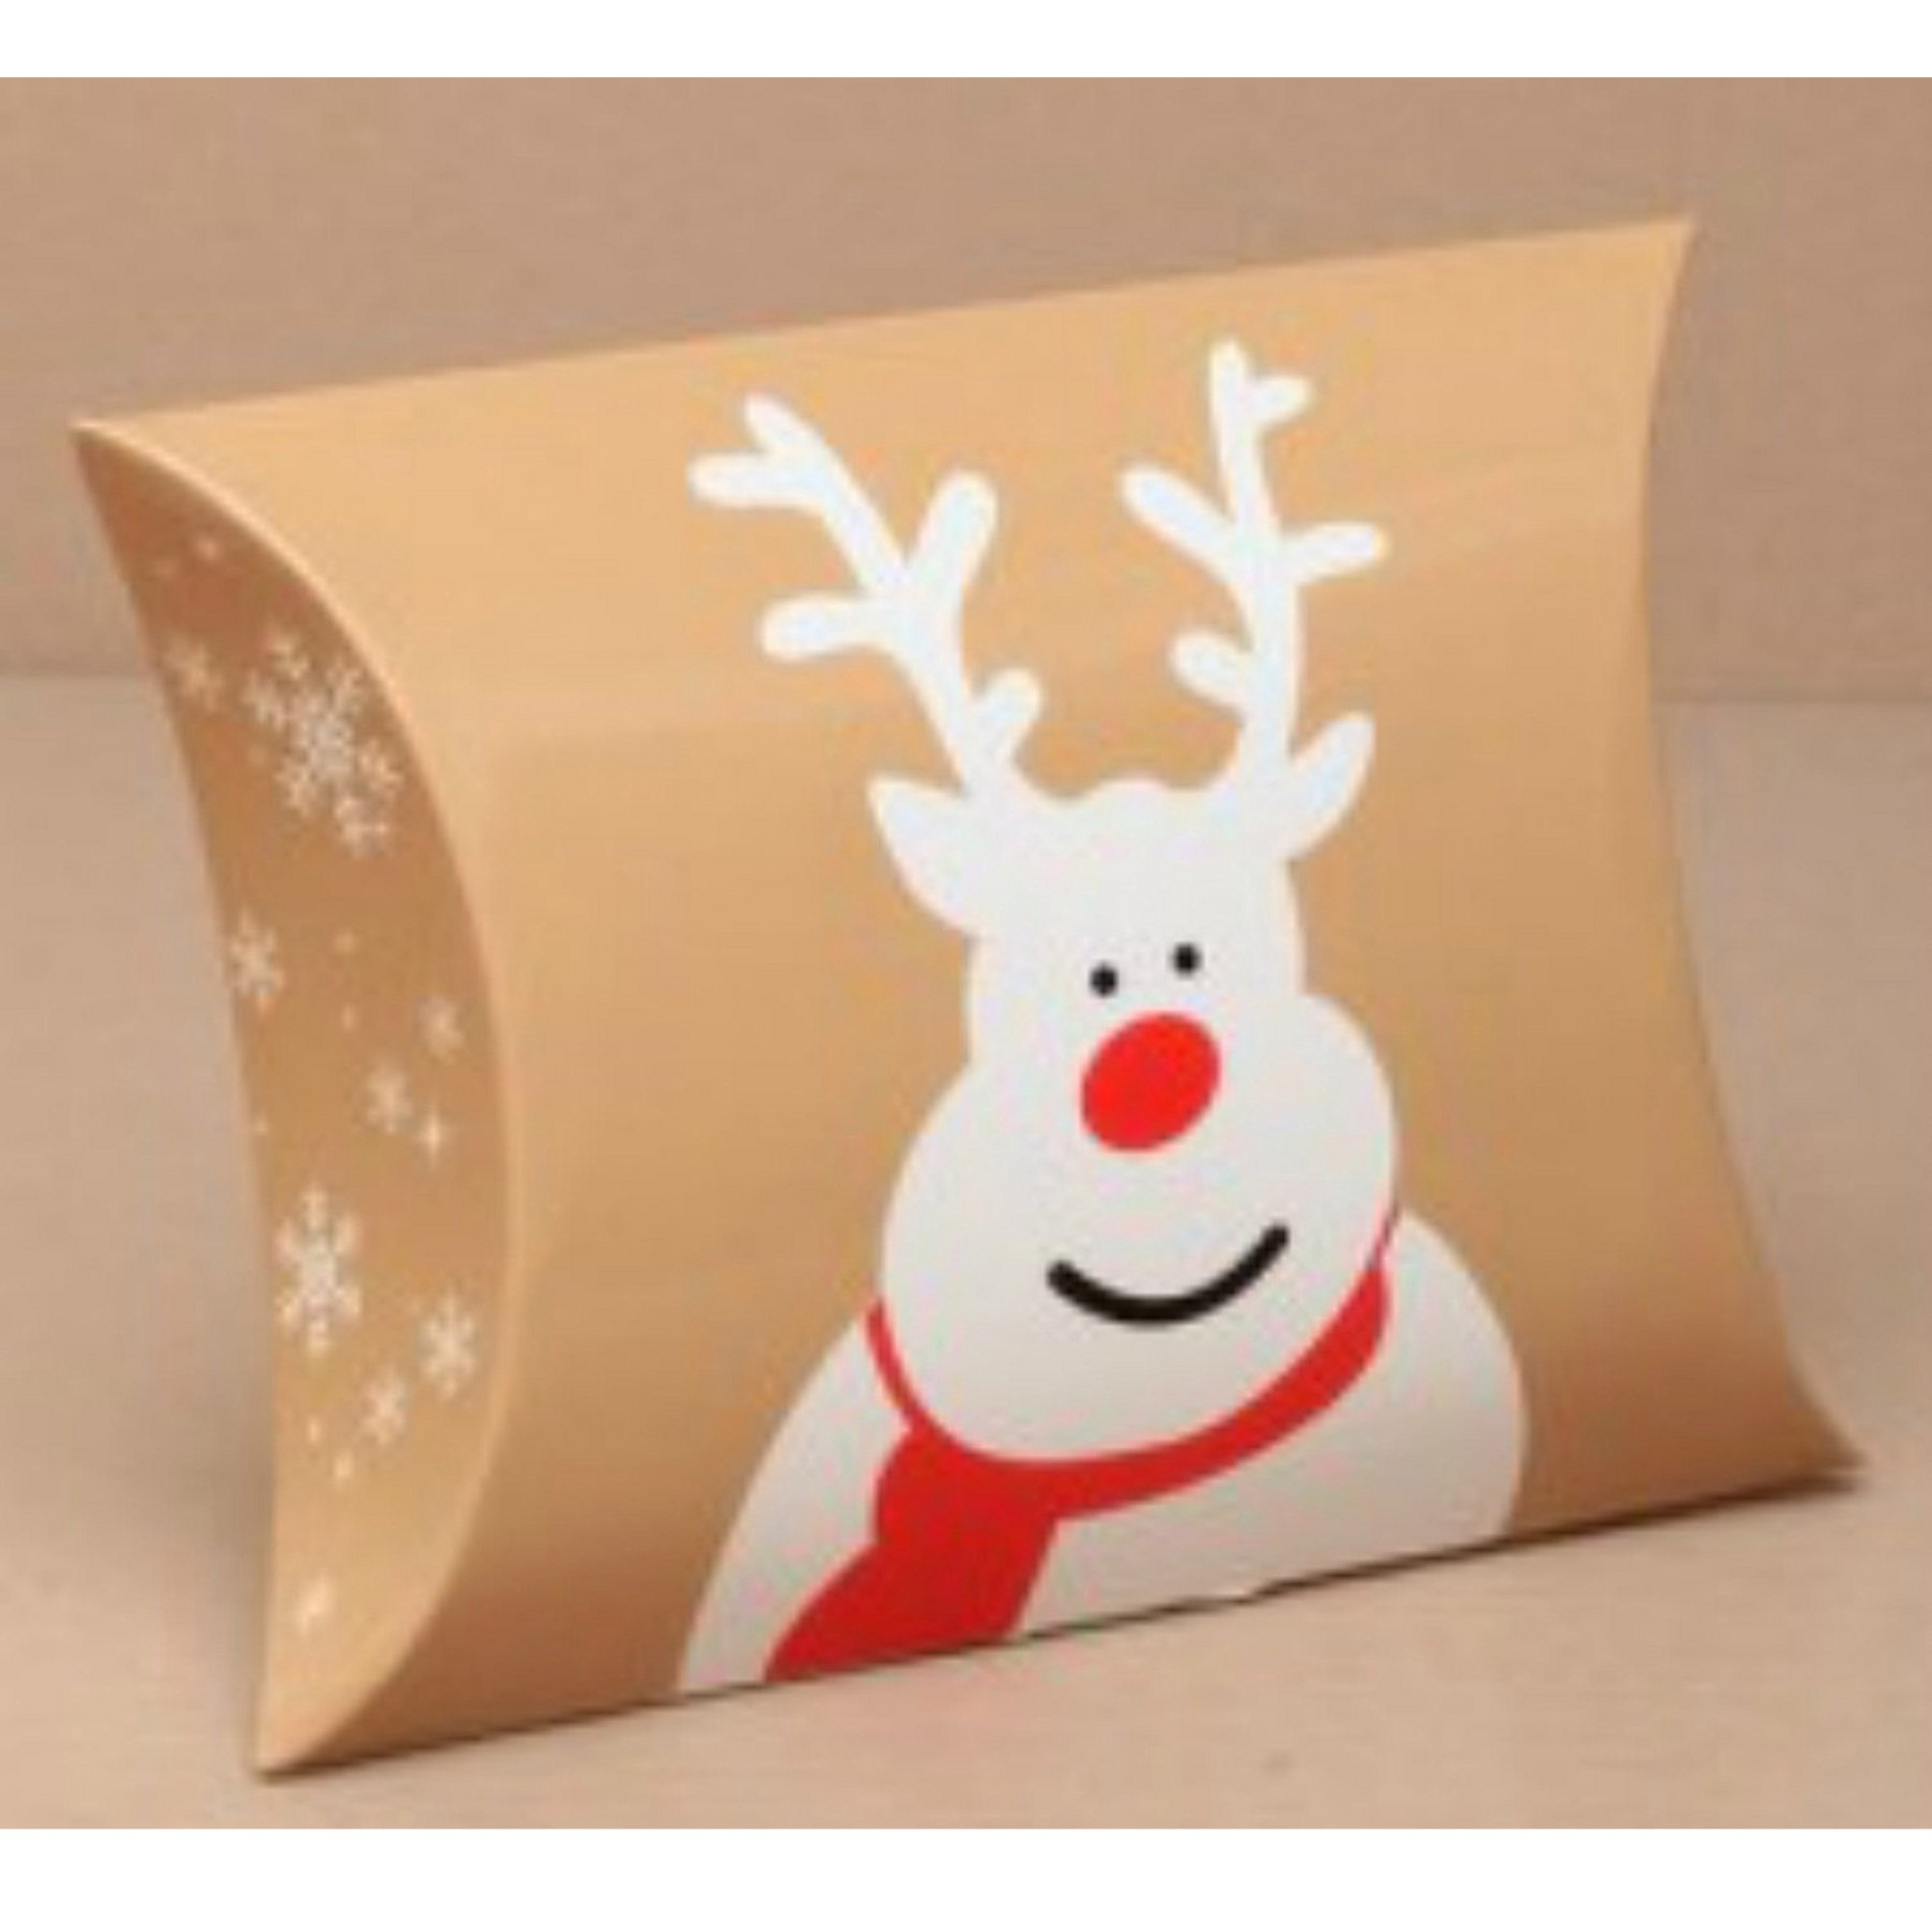 12 small rudolph pillow boxes christmas design for gifts, wedding favours, etc